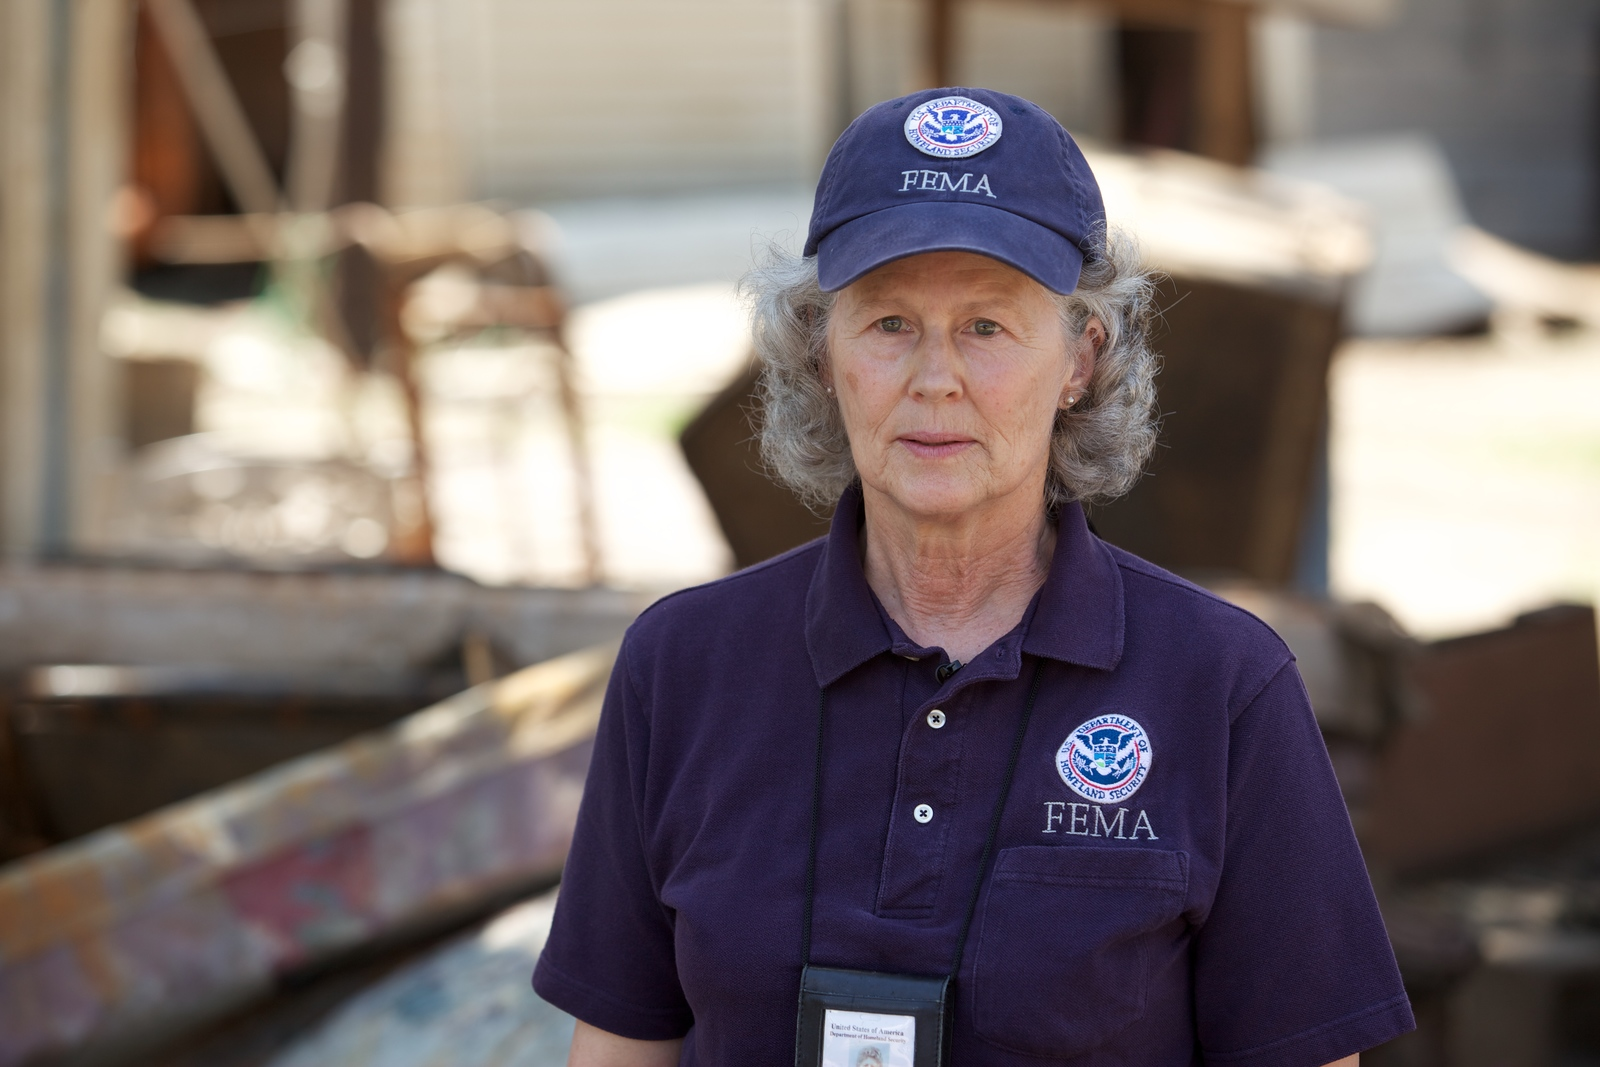 Flooding - Vicksburg, Miss. , June 23, 2011 -- FEMA Mitigation Specialist Martha Mills visits the damaged community in Vicksburg, Mississippi weeks after the water has receded. FEMA stays on the ground months after the initial disaster to assist businesses and residents to get the assistance they need.